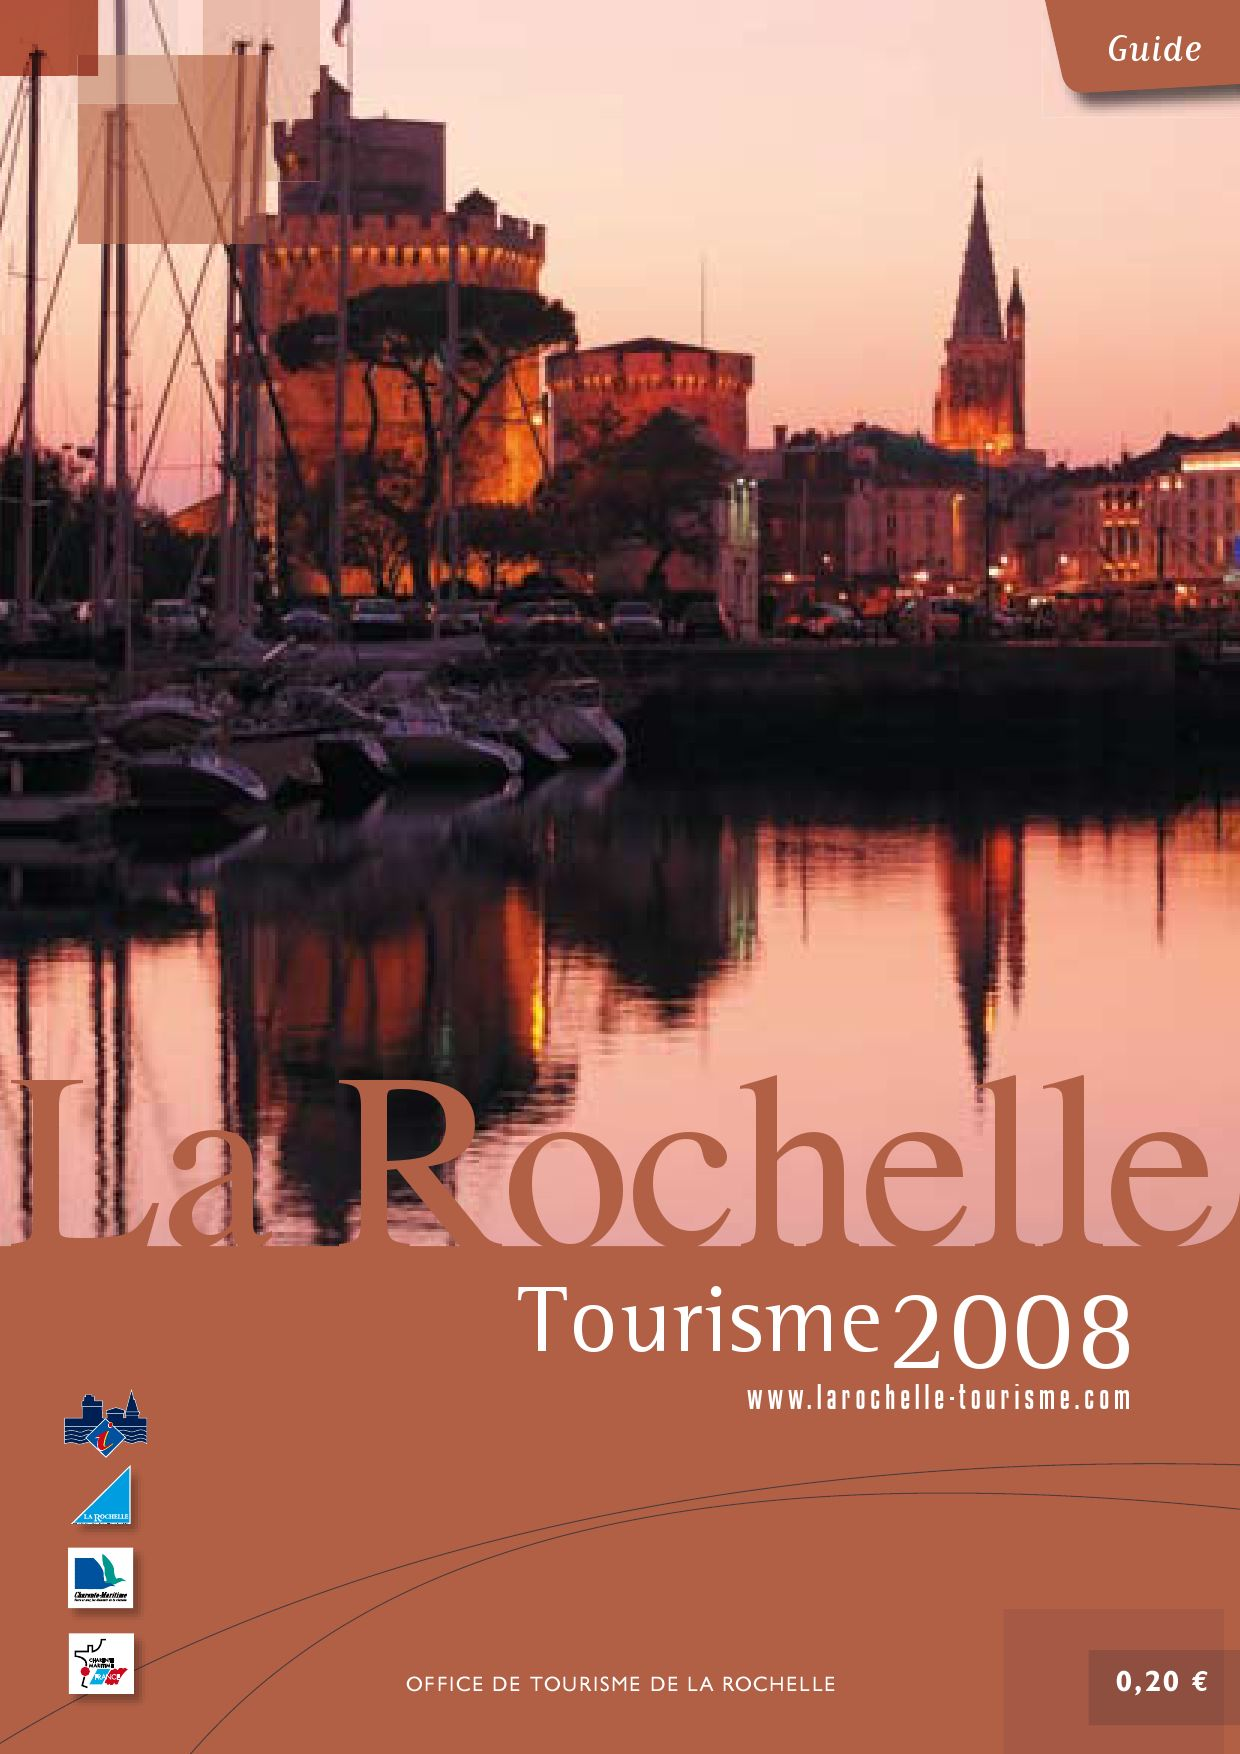 Le guide la rochelle 2008 by office de tourisme la rochelle issuu - La rochelle office du tourisme ...